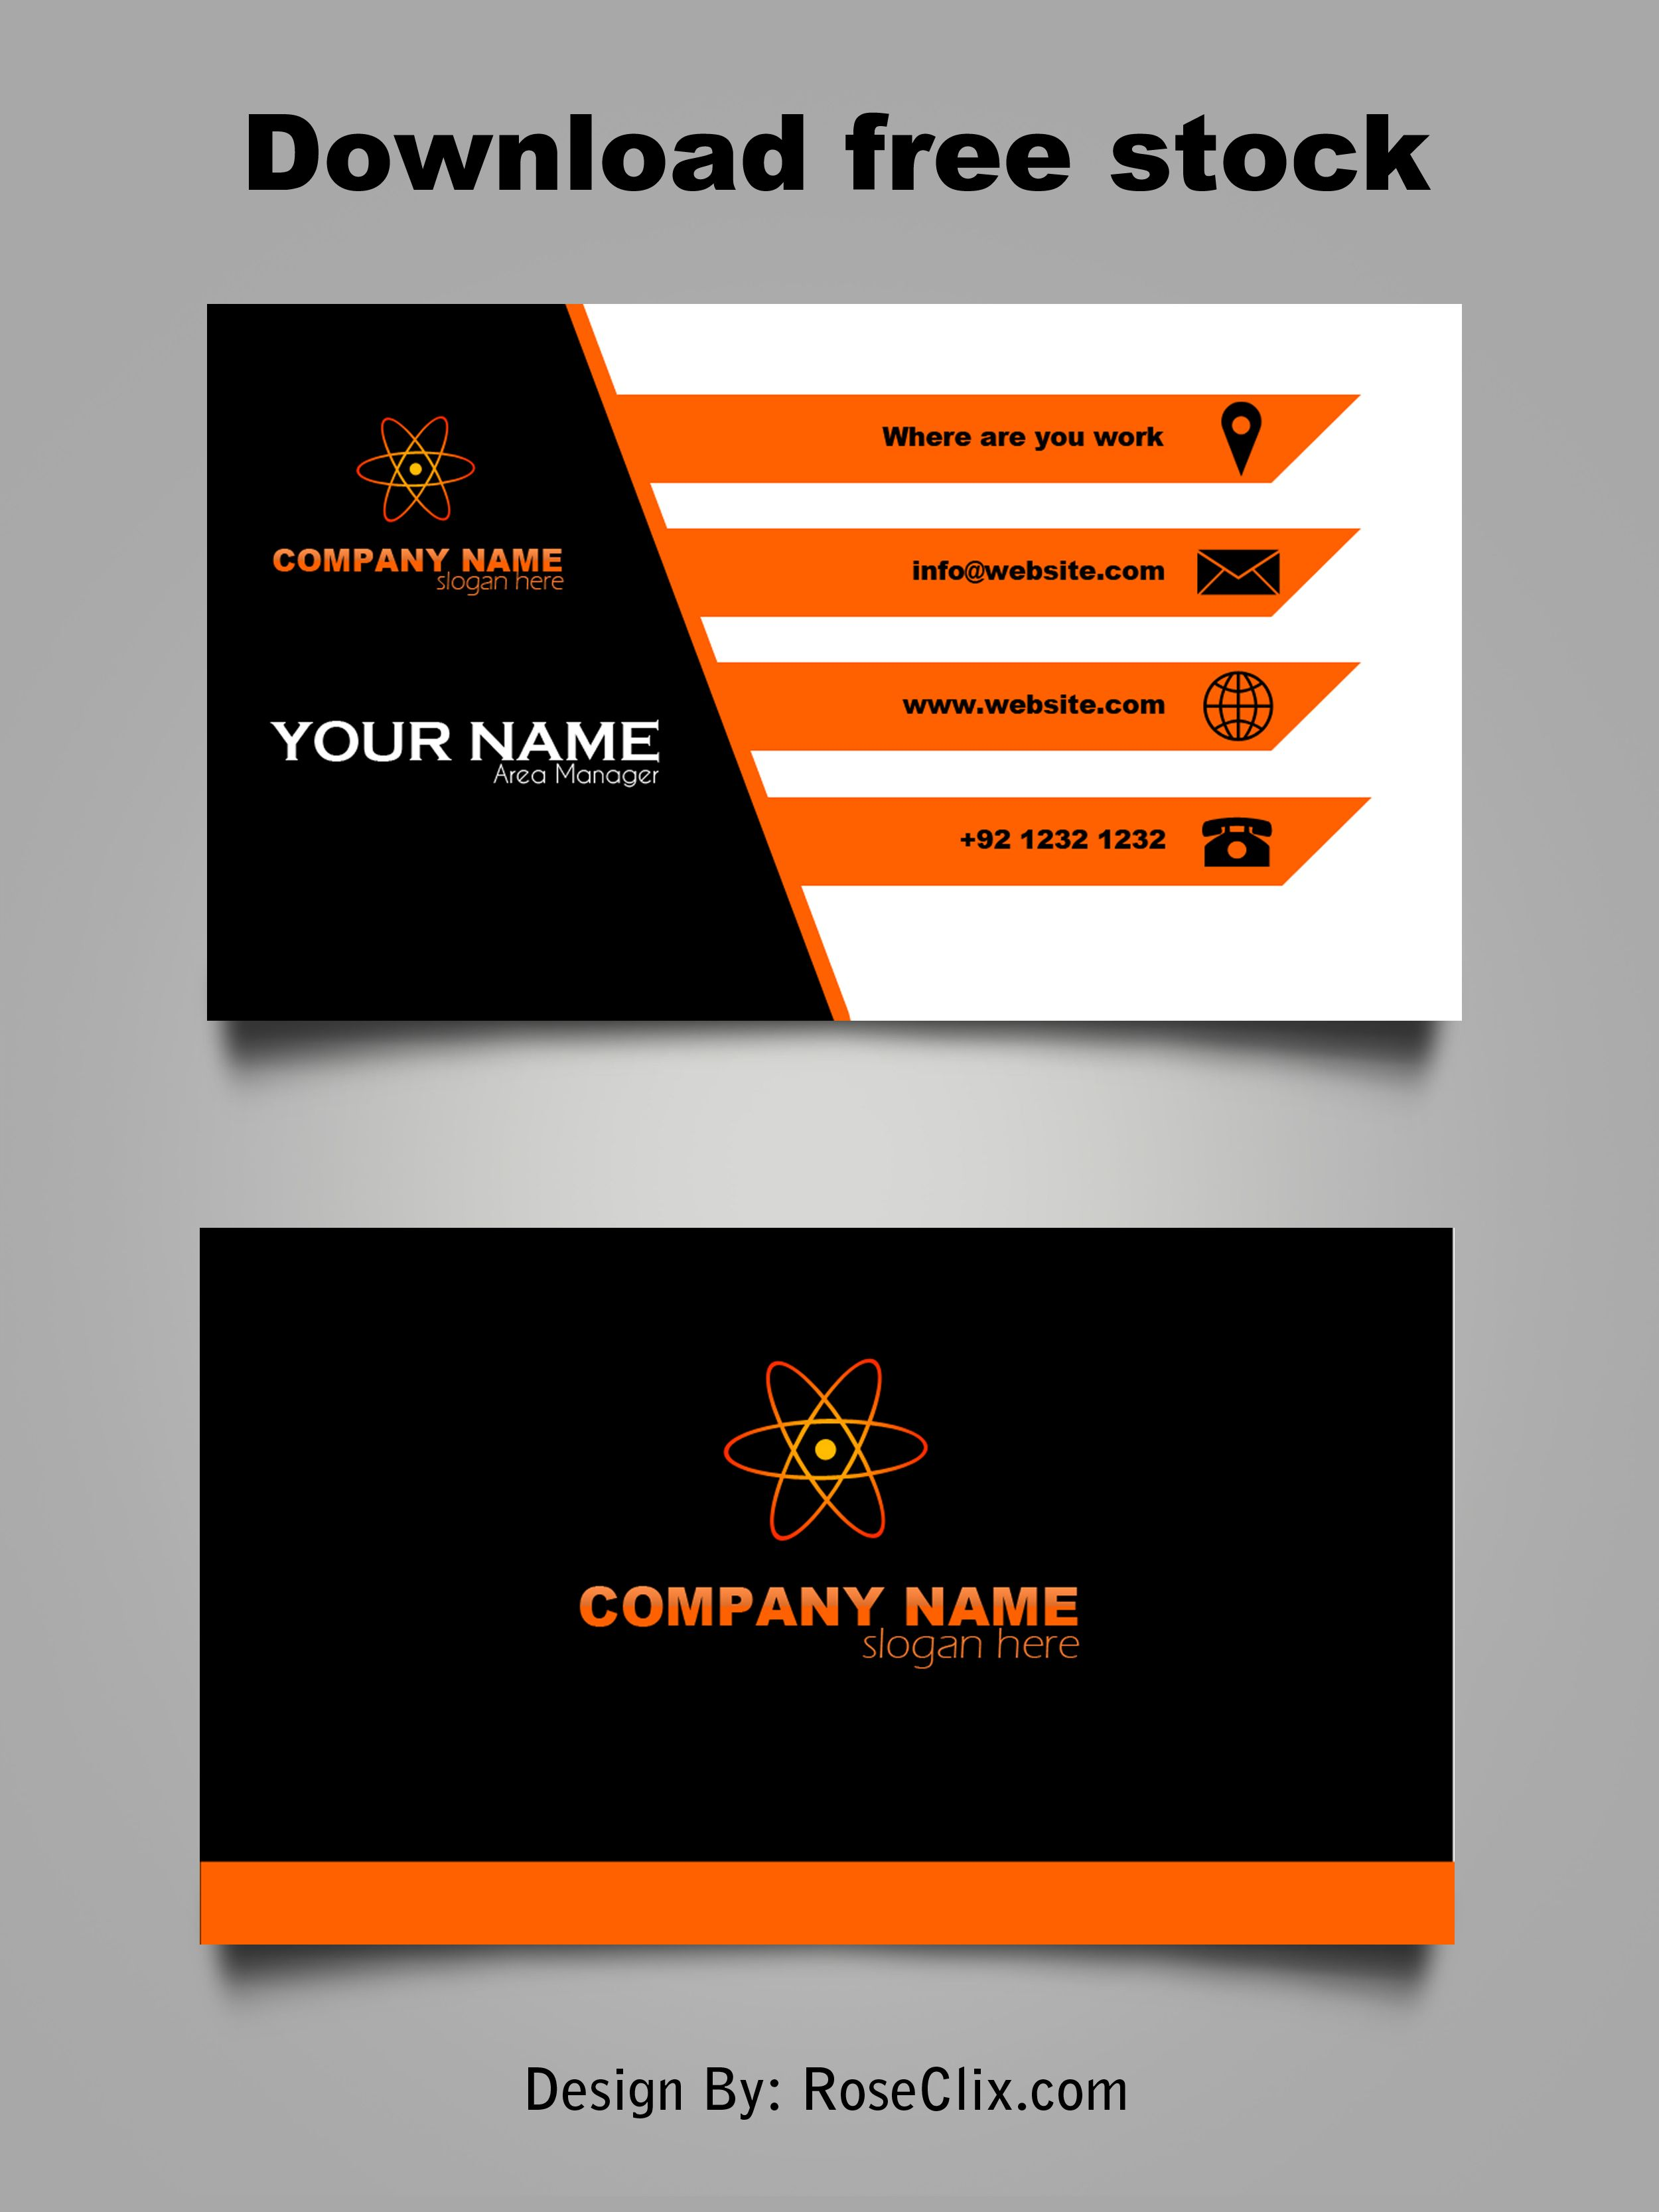 Business card template free downloads psd fils business card business card template free downloads psd fils accmission Choice Image